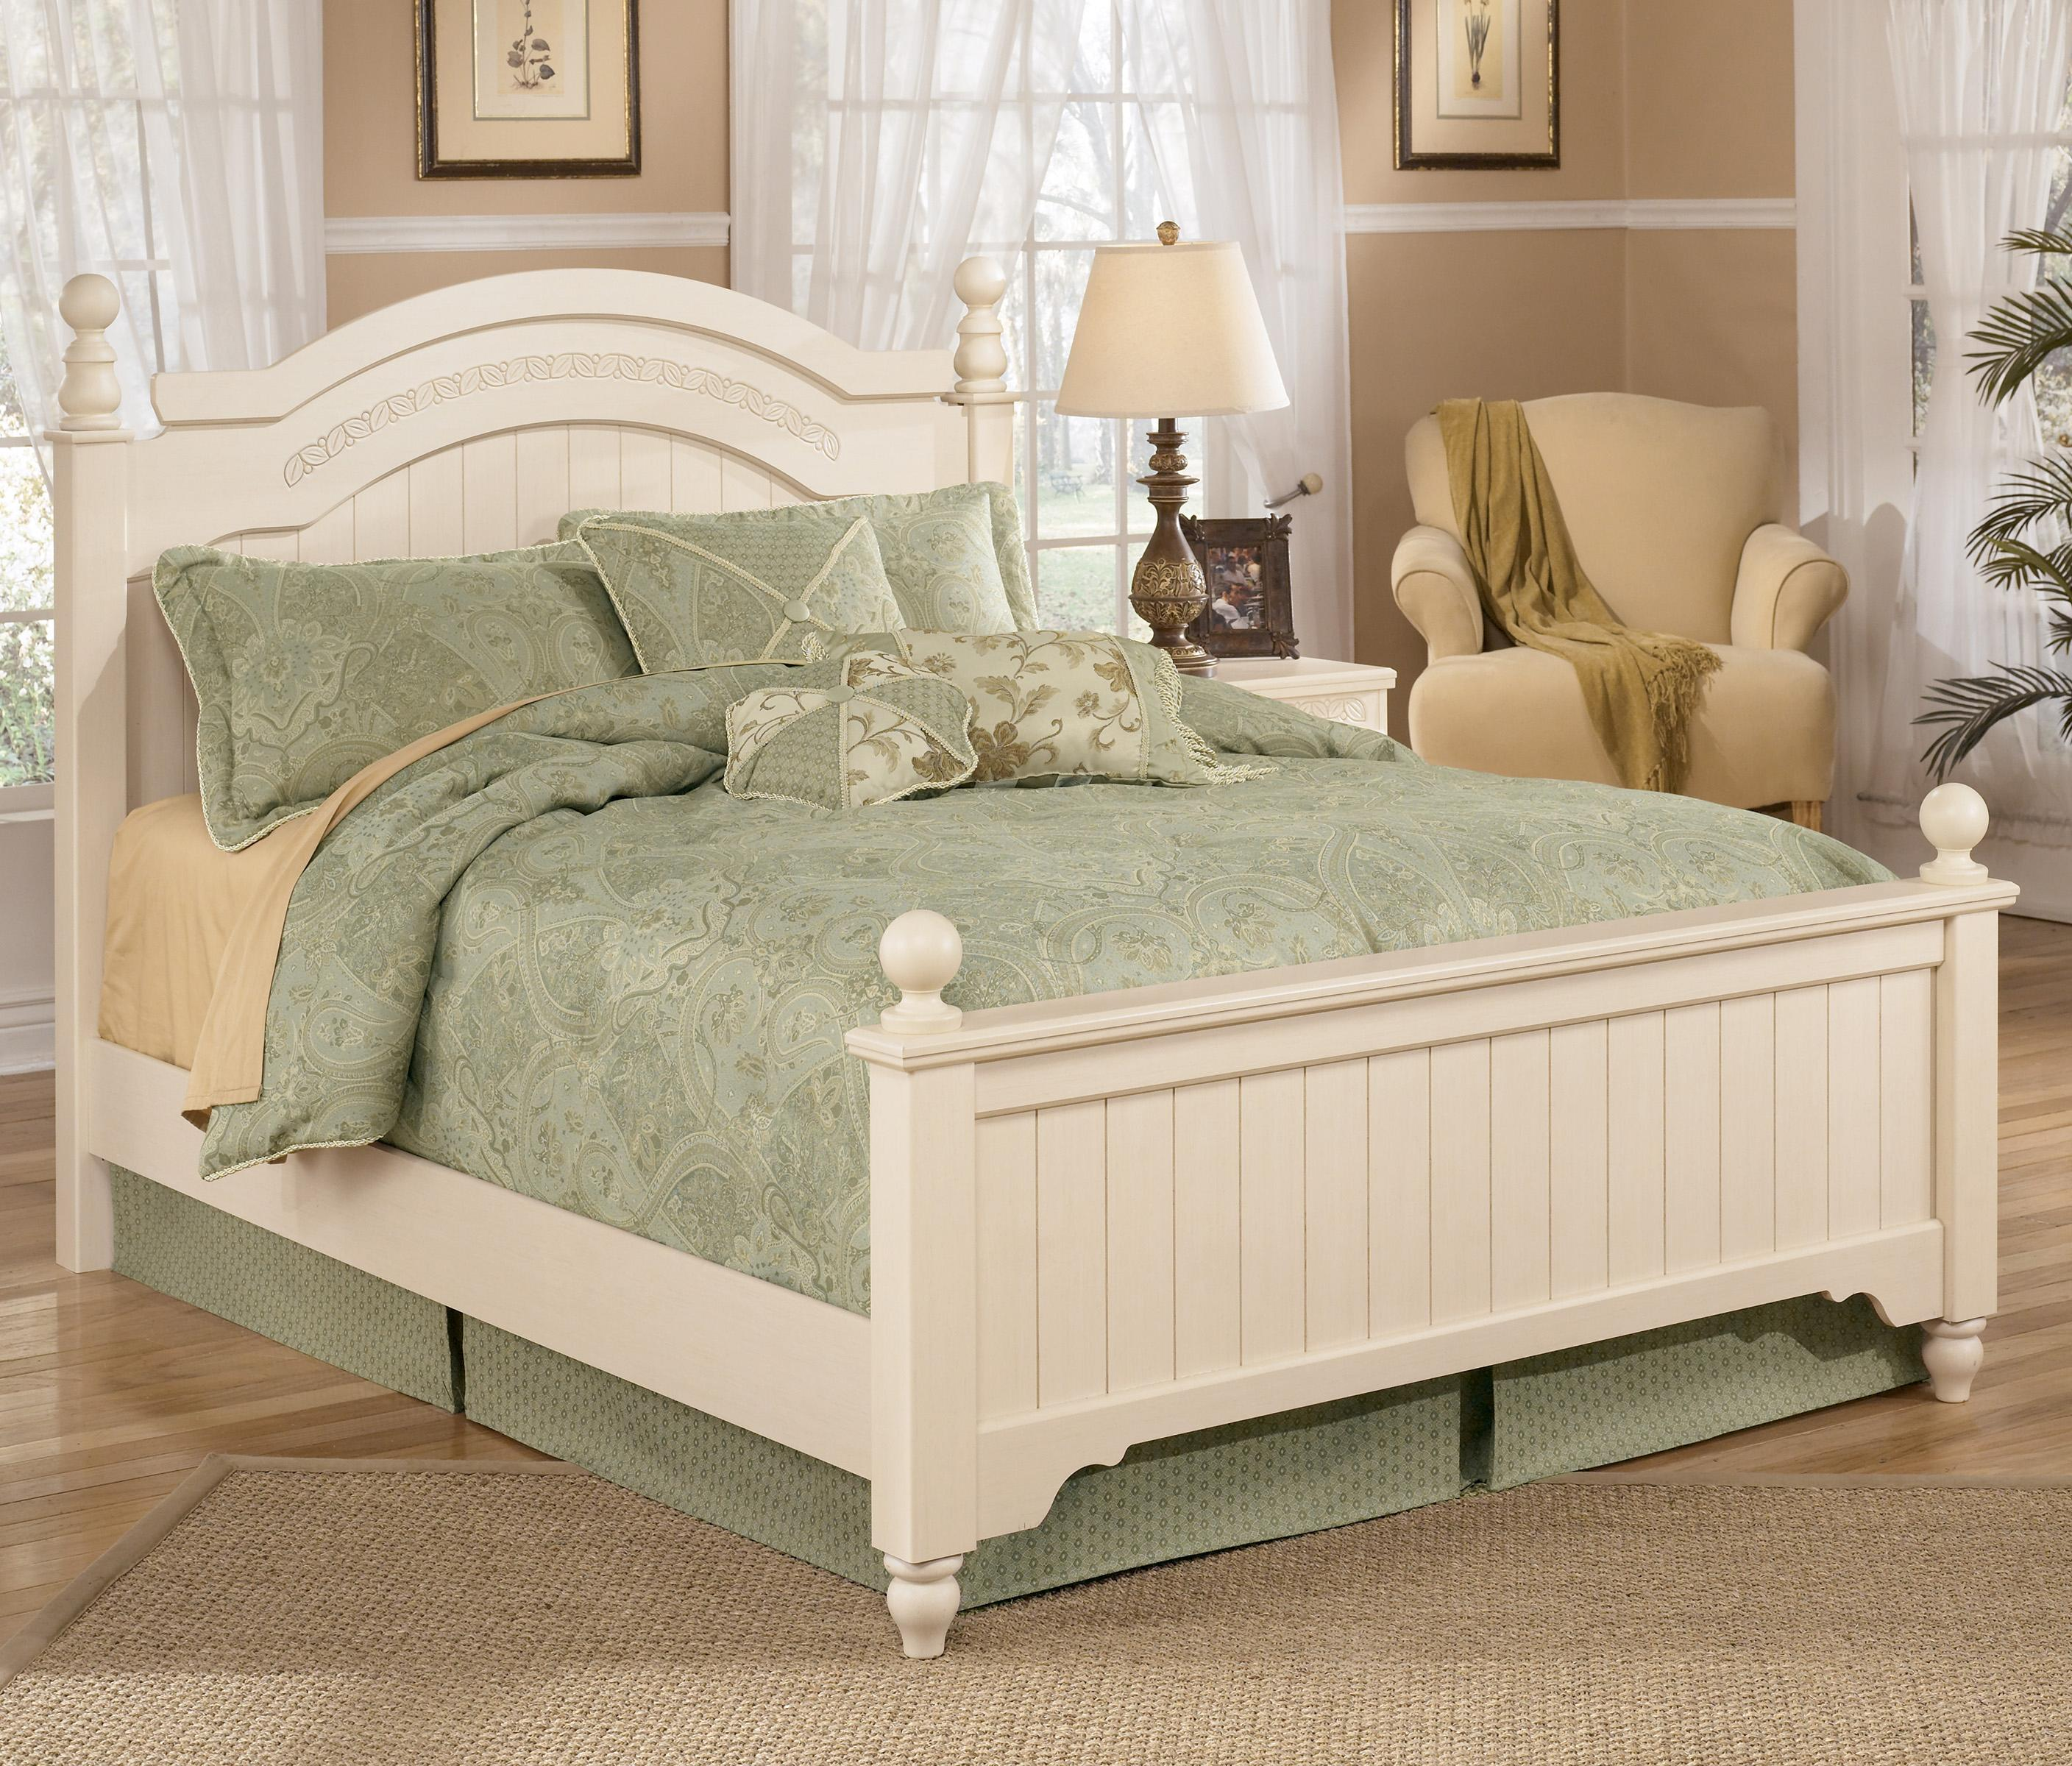 Signature Design by Ashley Cottage Retreat Queen Size Poster Bed - Item Number: B213-57N+54N+98N